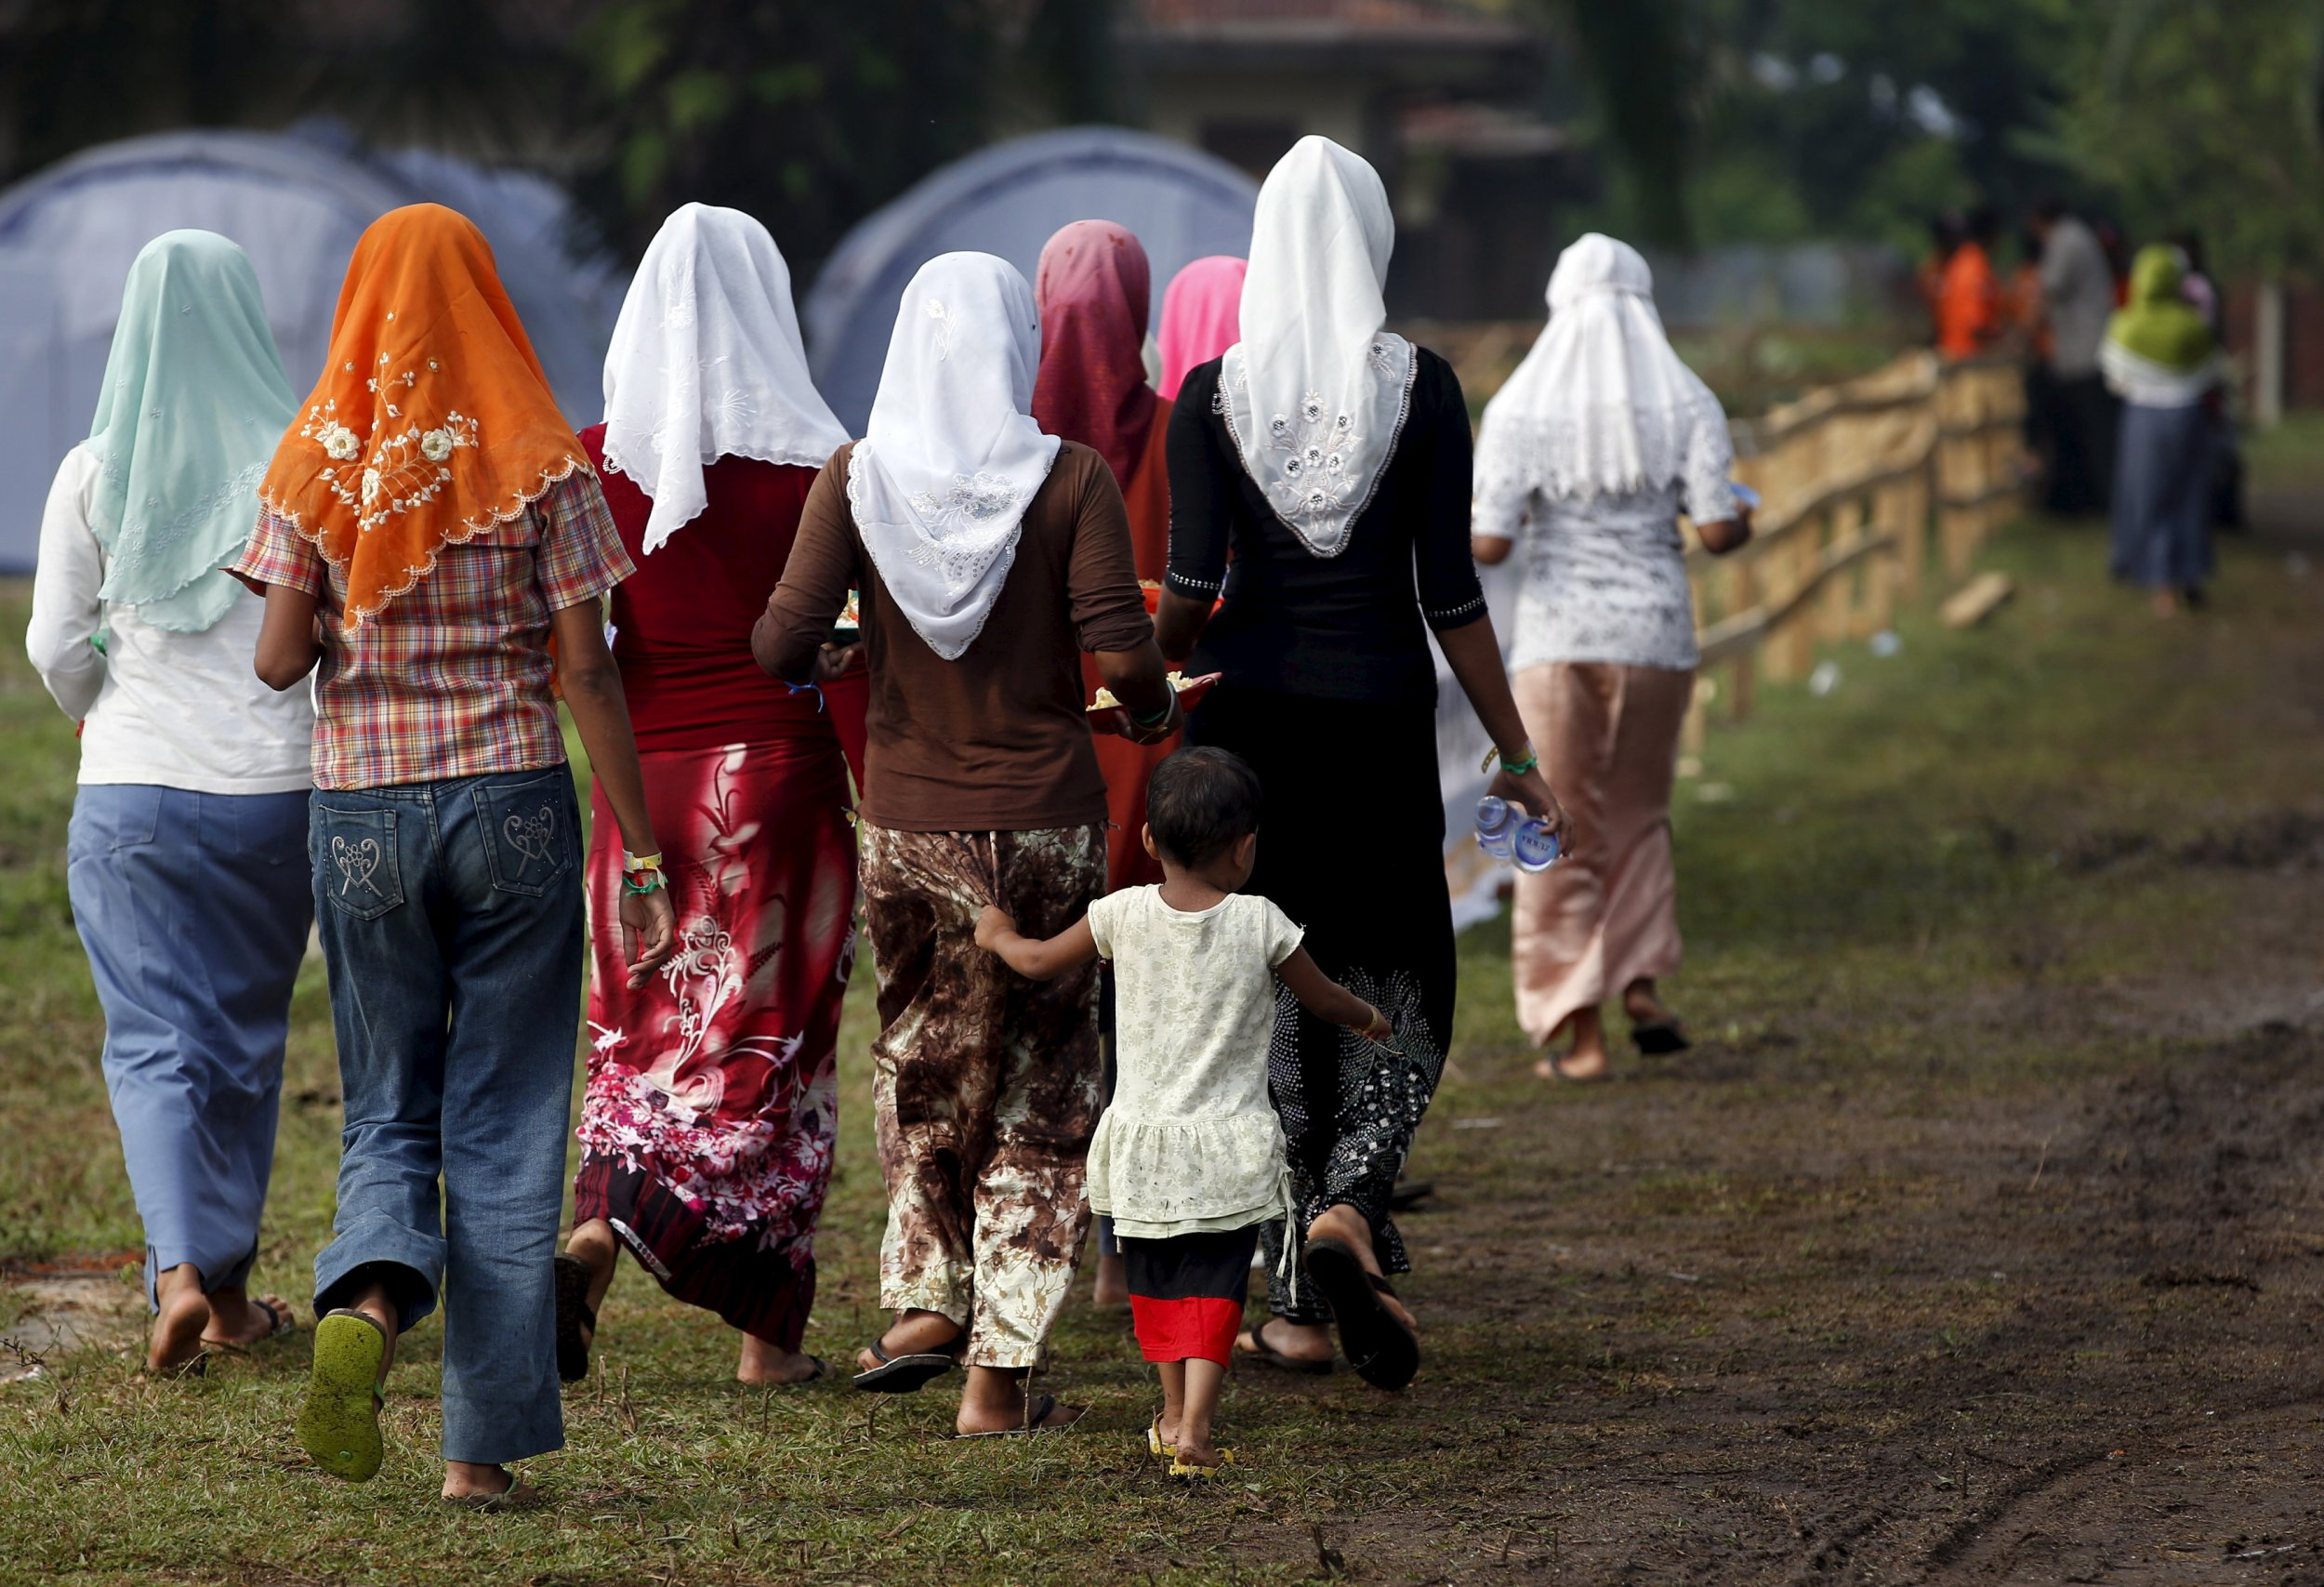 Tutu: The Slow Genocide Against the Rohingya